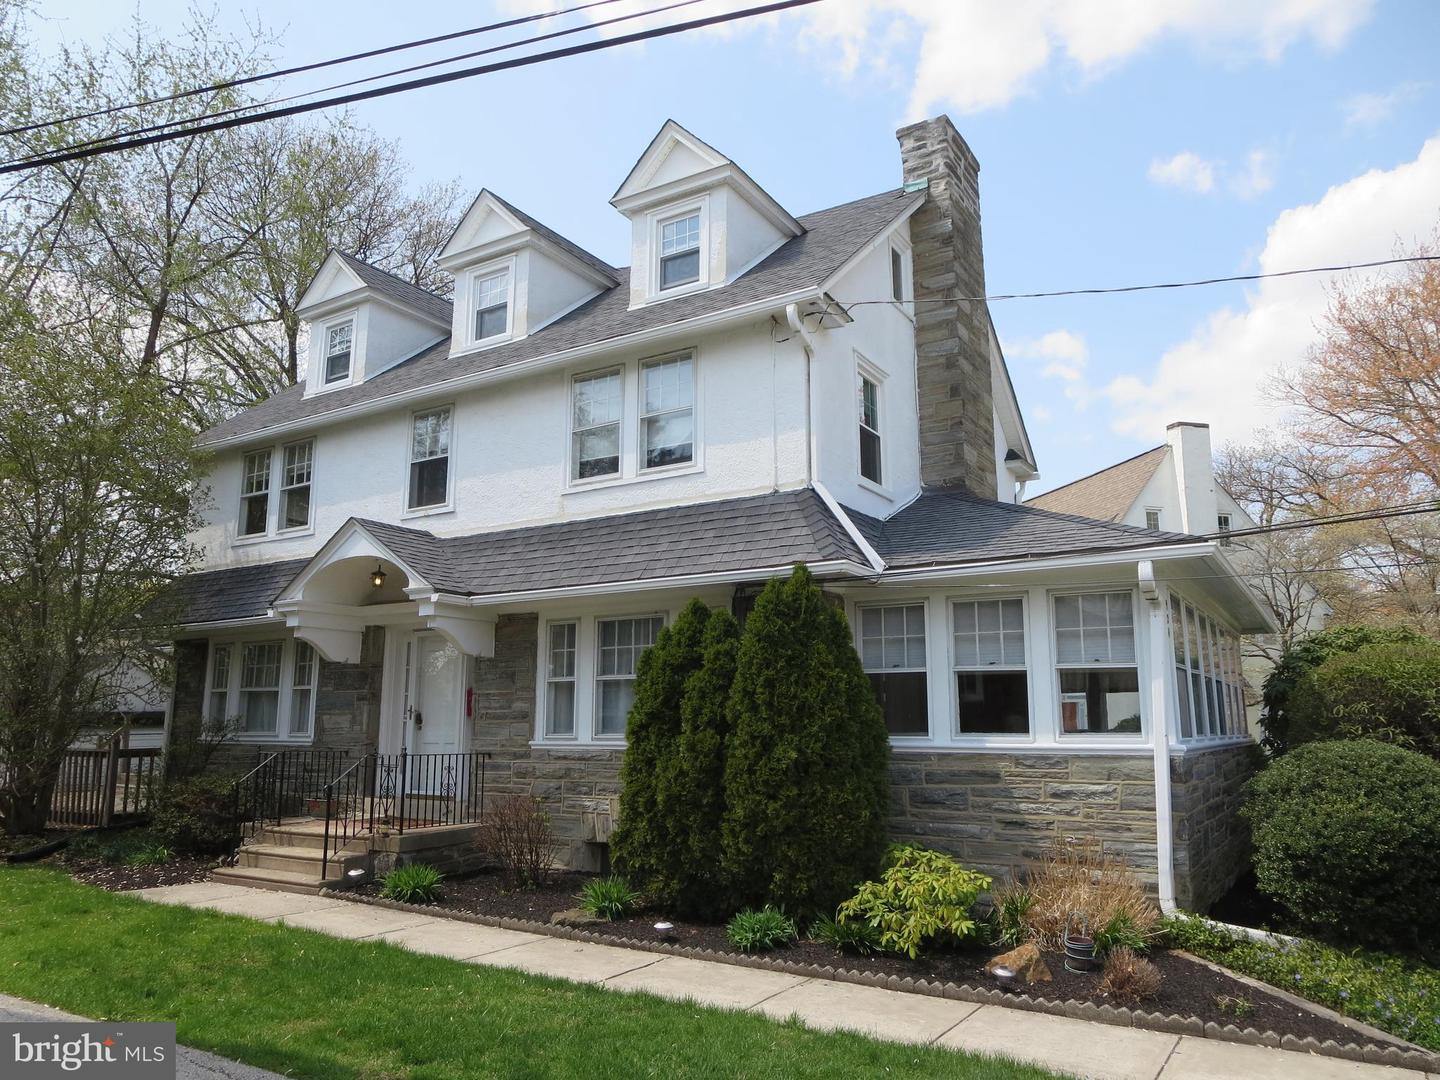 924 Childs Avenue Drexel Hill, PA 19026